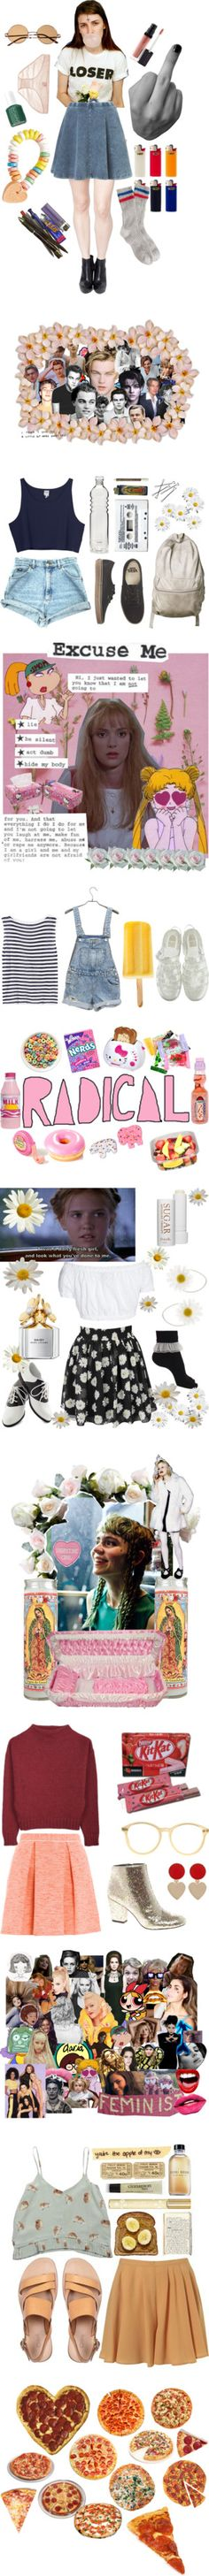 """teen dream"" by calivintage ❤ liked on Polyvore"